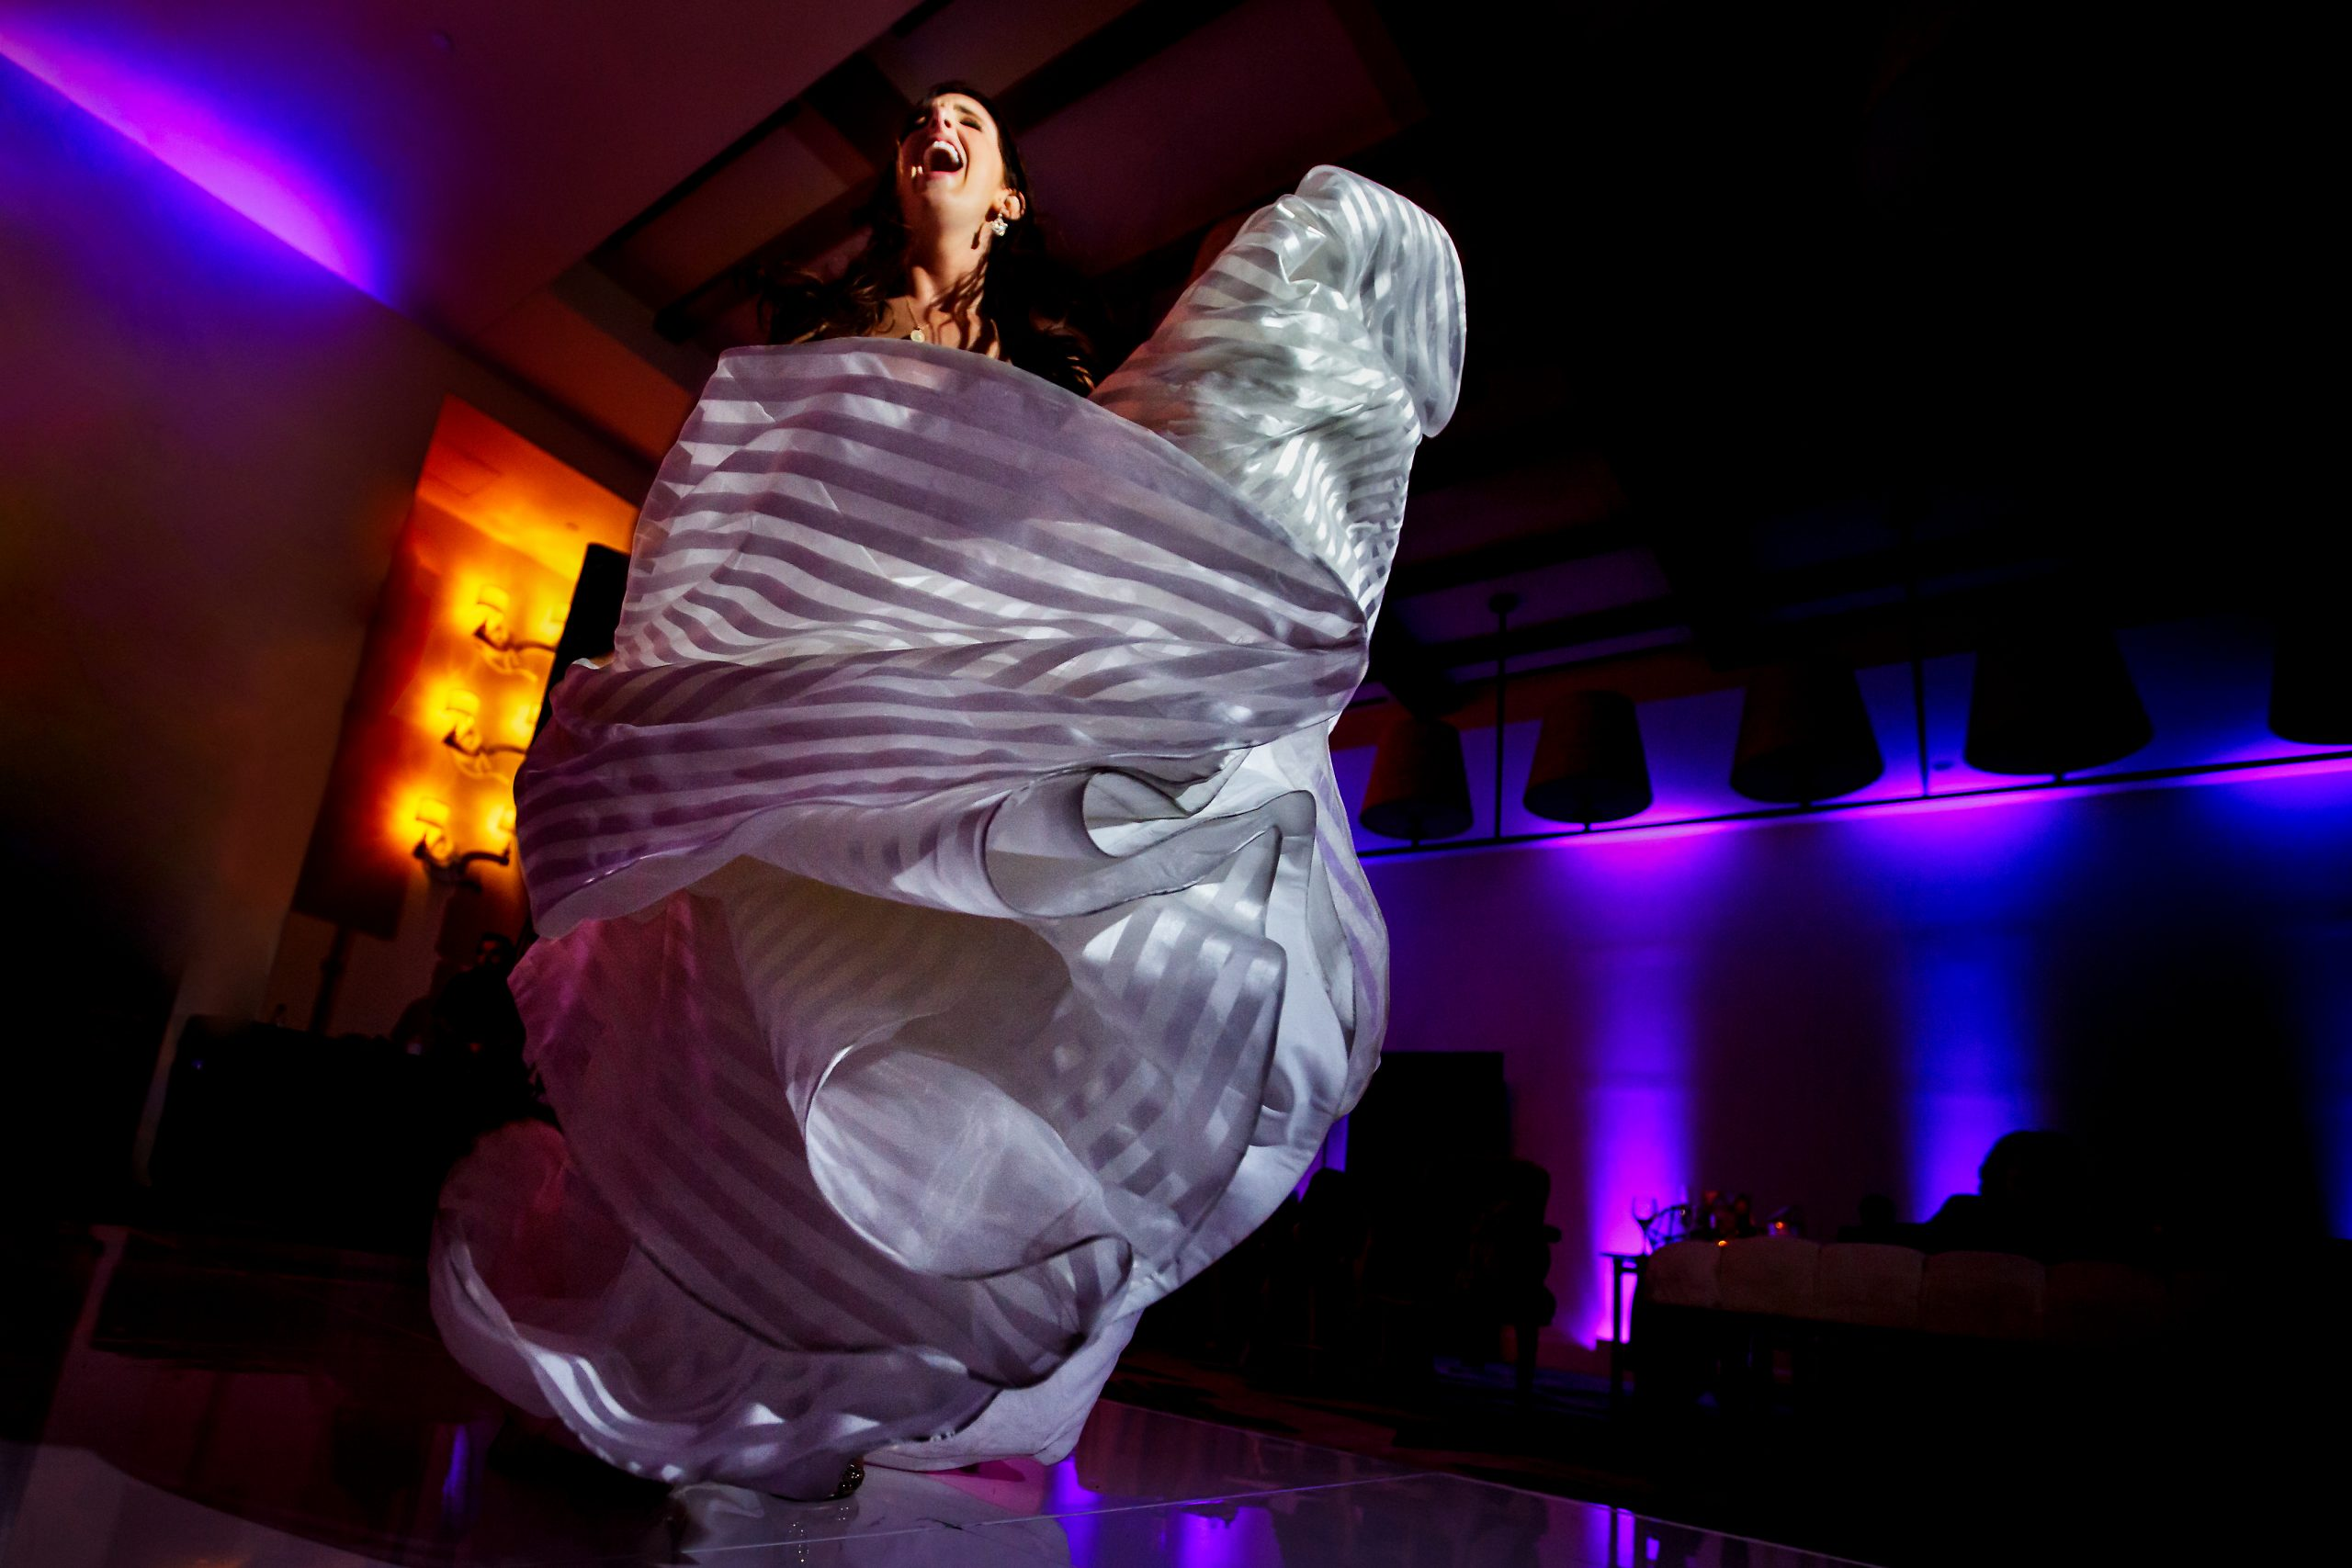 Bride's dress twirls as she dances